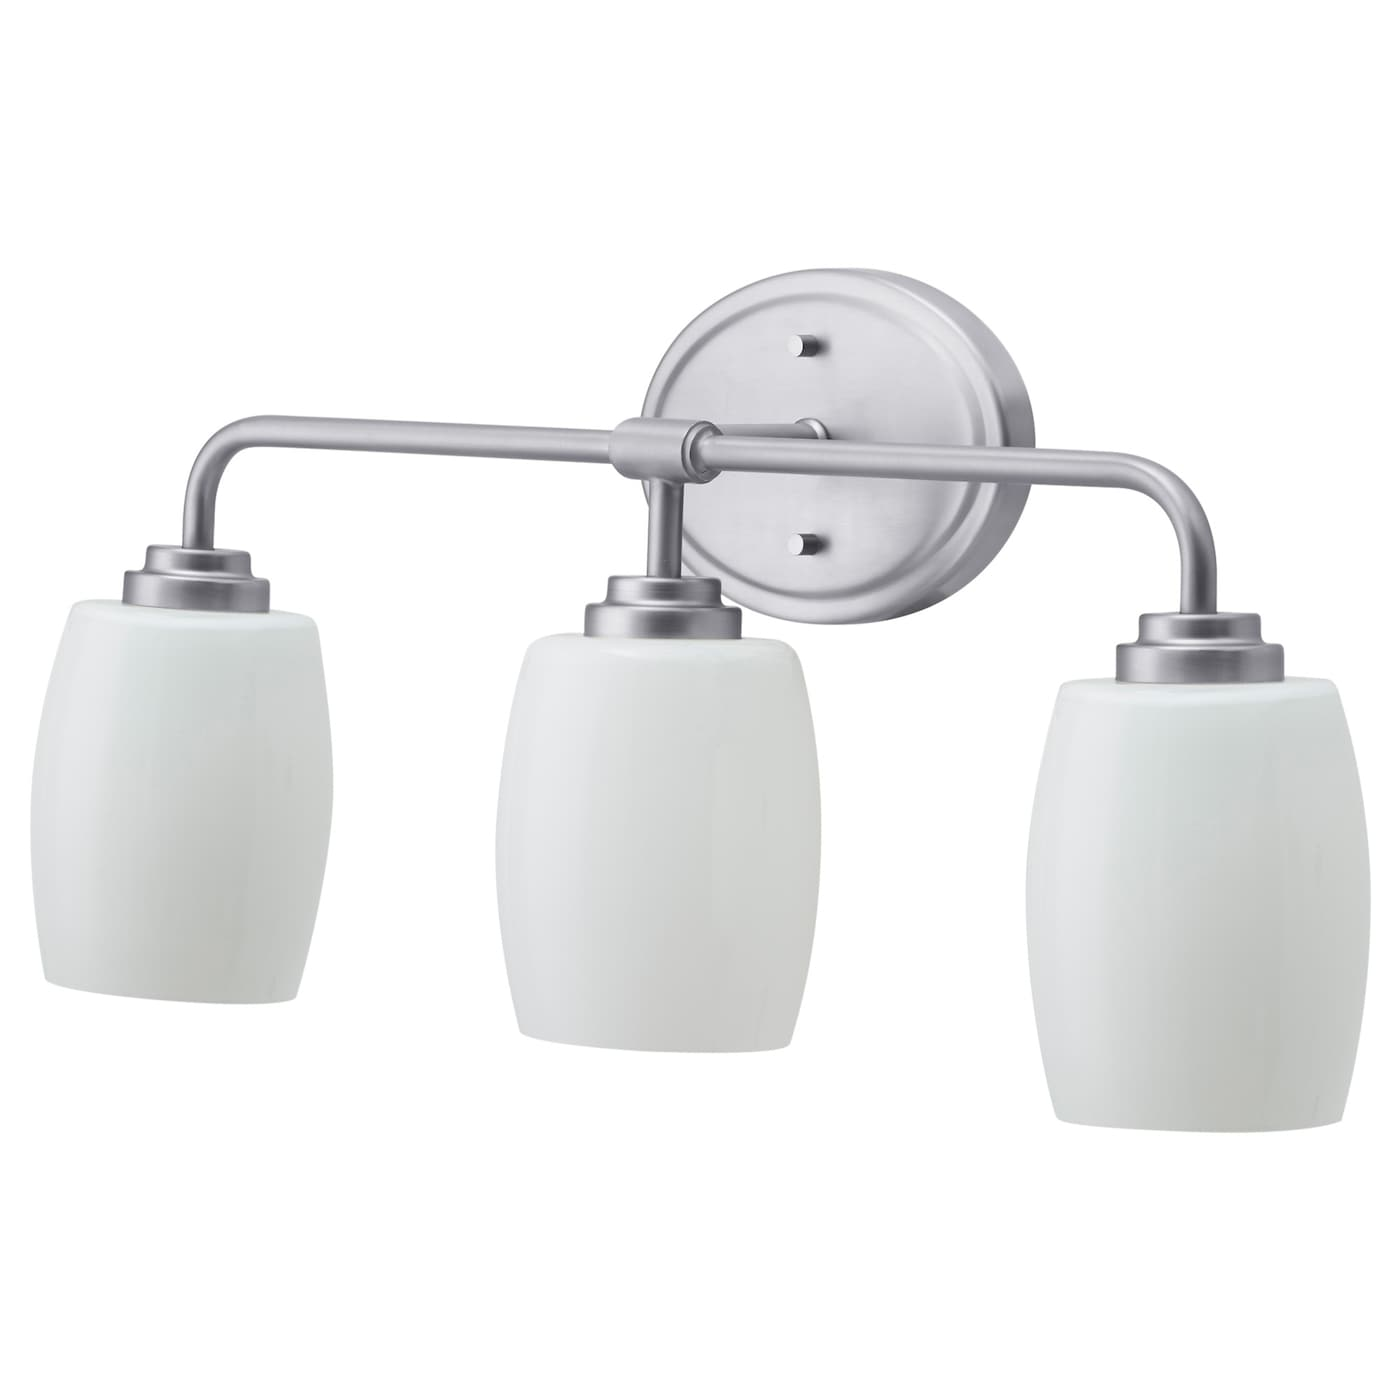 Vallmora Wall Lamp 3 Spots Nickel